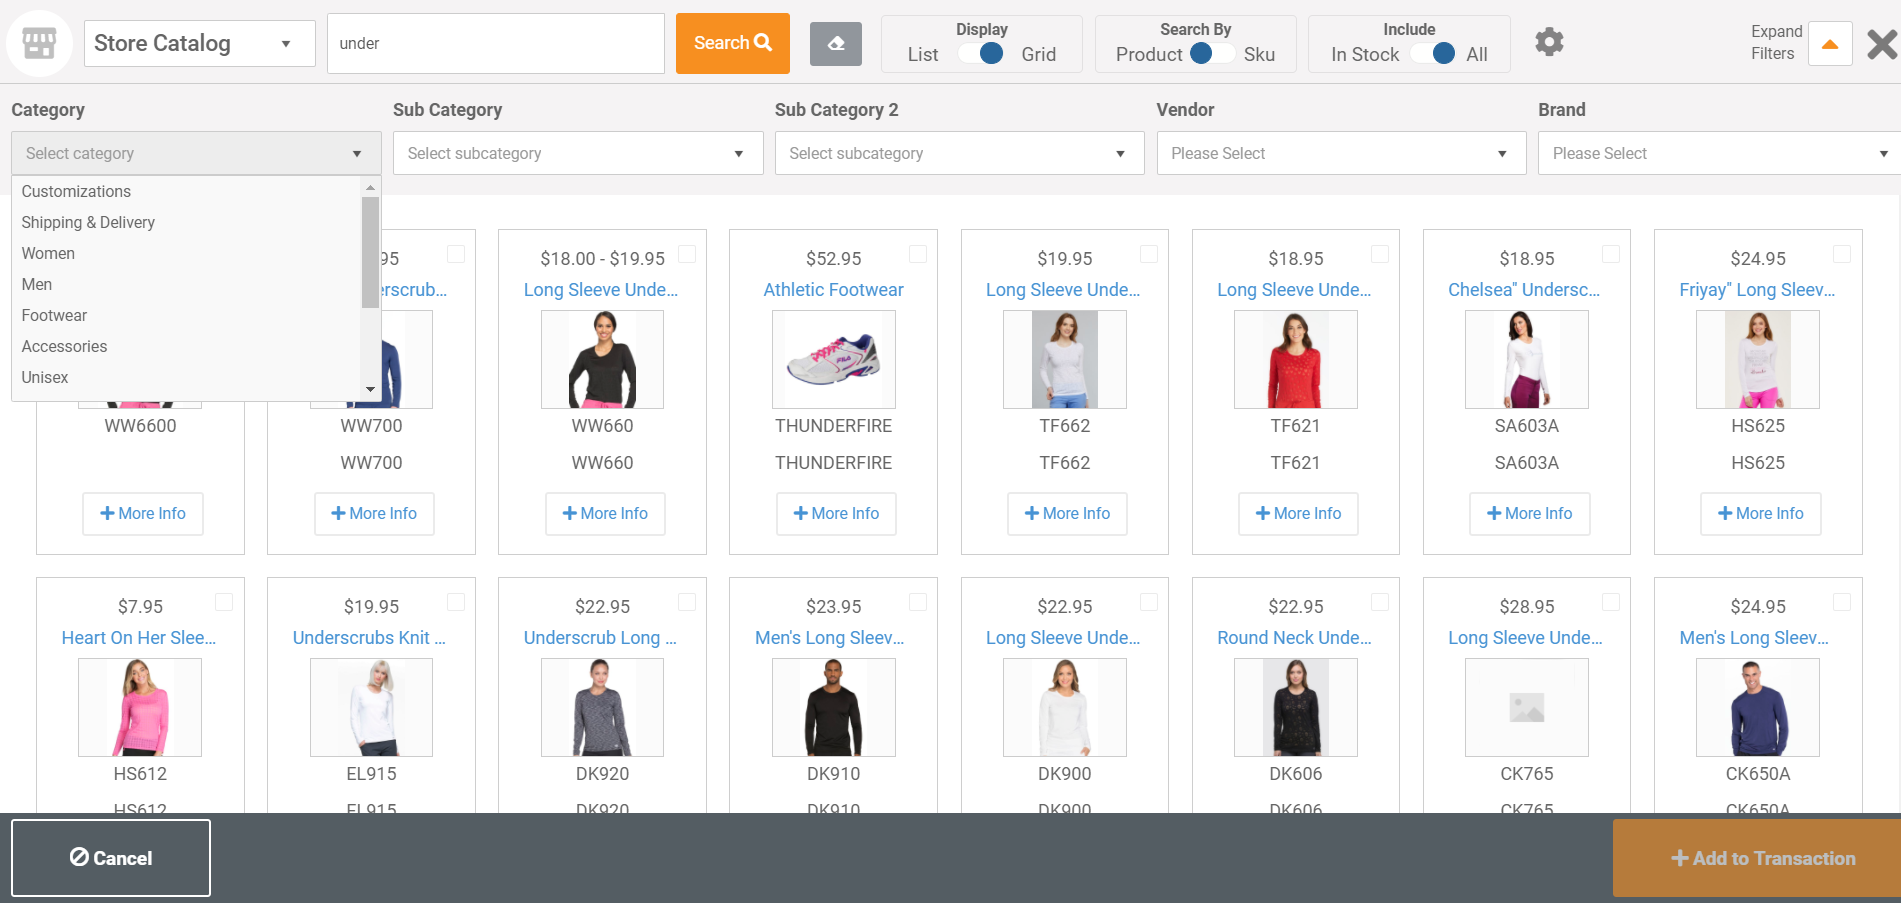 Advanced Product Search - Allows you to search by item name, SKU, style, UPC or Alt ID.  Results can be displayed in table format or as product tiles.  Advanced filters allow you to view results by category, vendors, brand, color, size or other attribute.